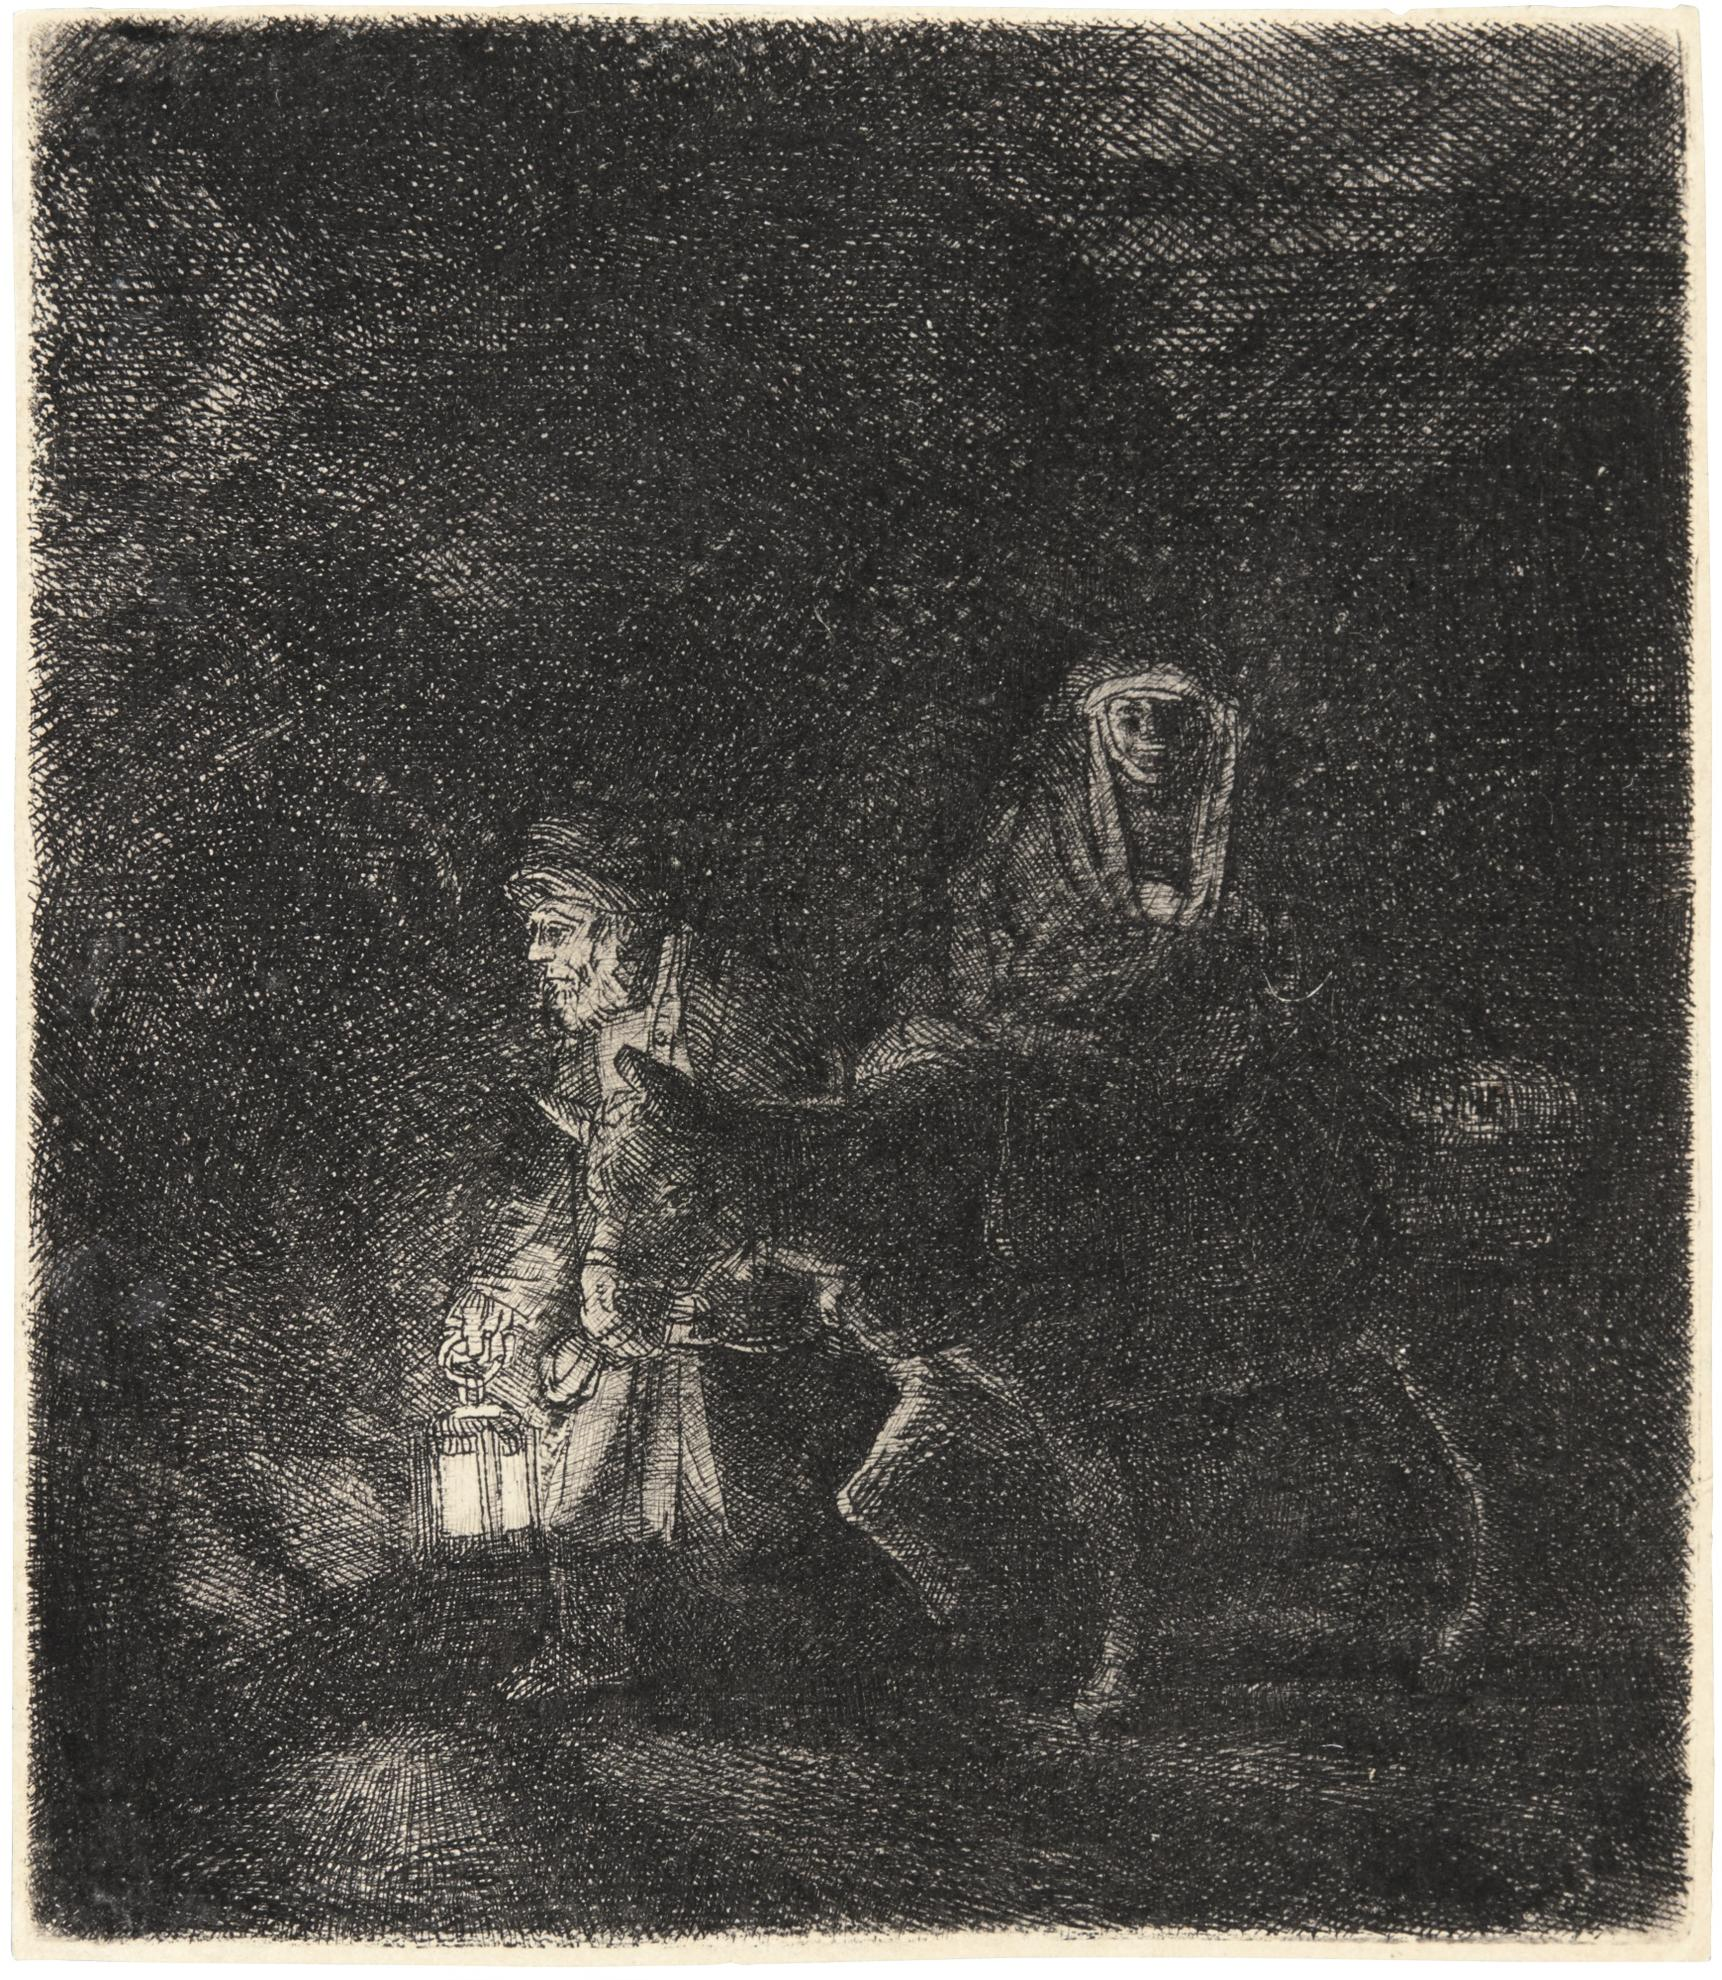 Rembrandt van Rijn-The Flight Into Egypt: A Night Piece (B., Holl. 53; New Holl. 262; H. 253)-1651